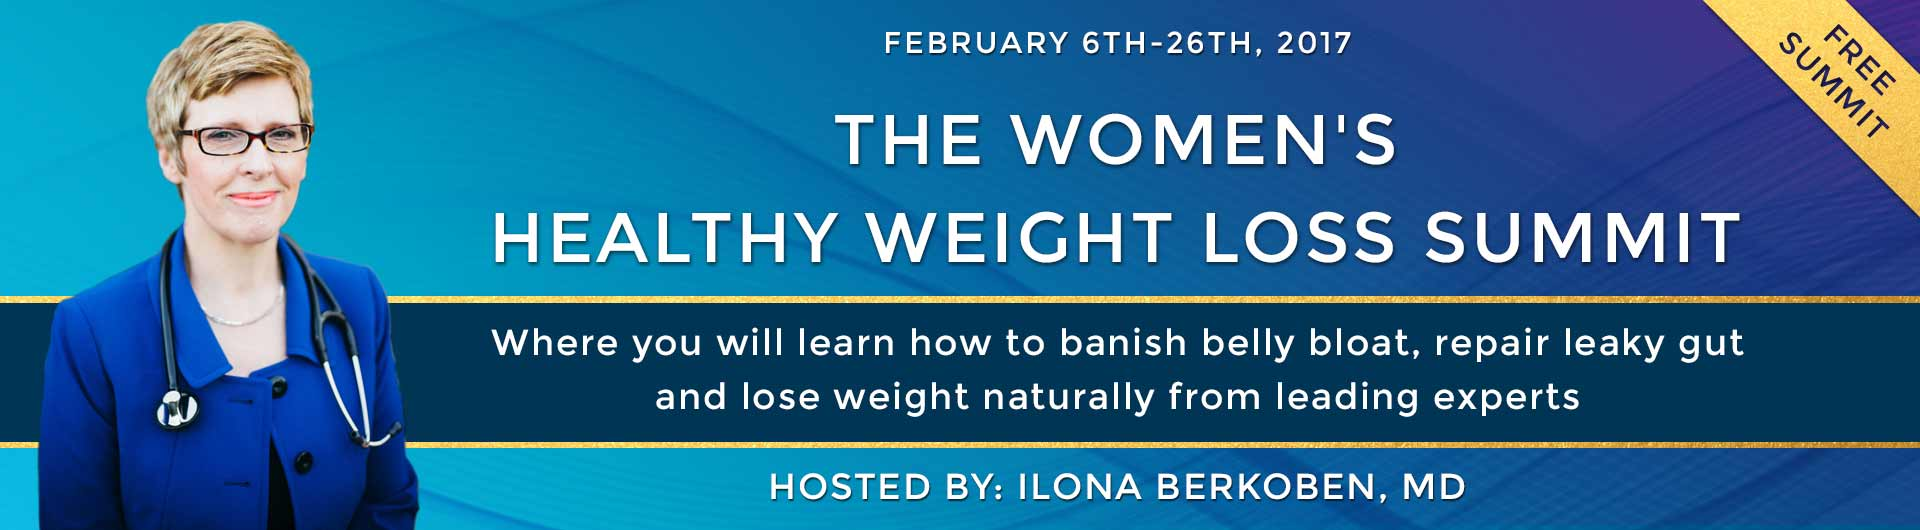 The Women's Healthy Weight Loss Summit